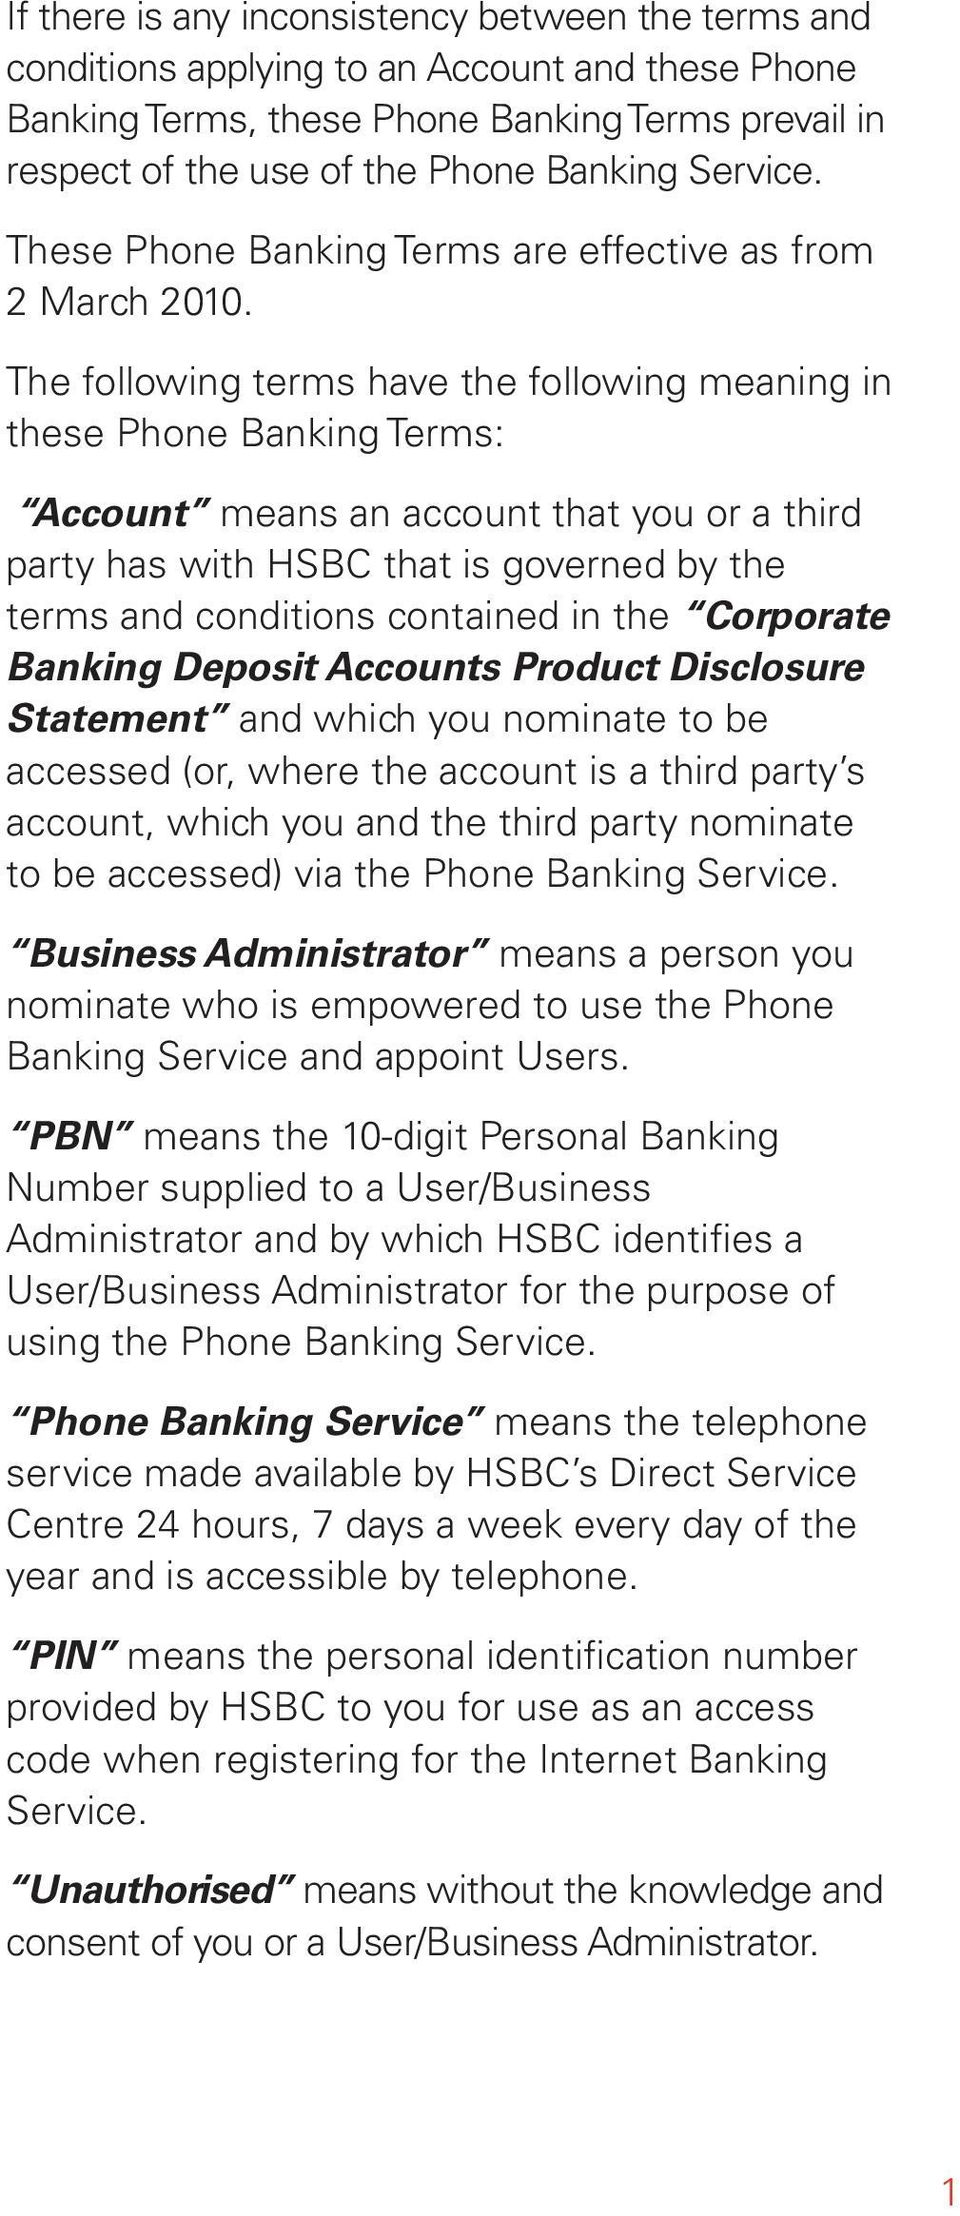 The following terms have the following meaning in these Phone Banking Terms: Accont means an accont that yo or a third party has with HSBC that is governed by the terms and conditions contained in